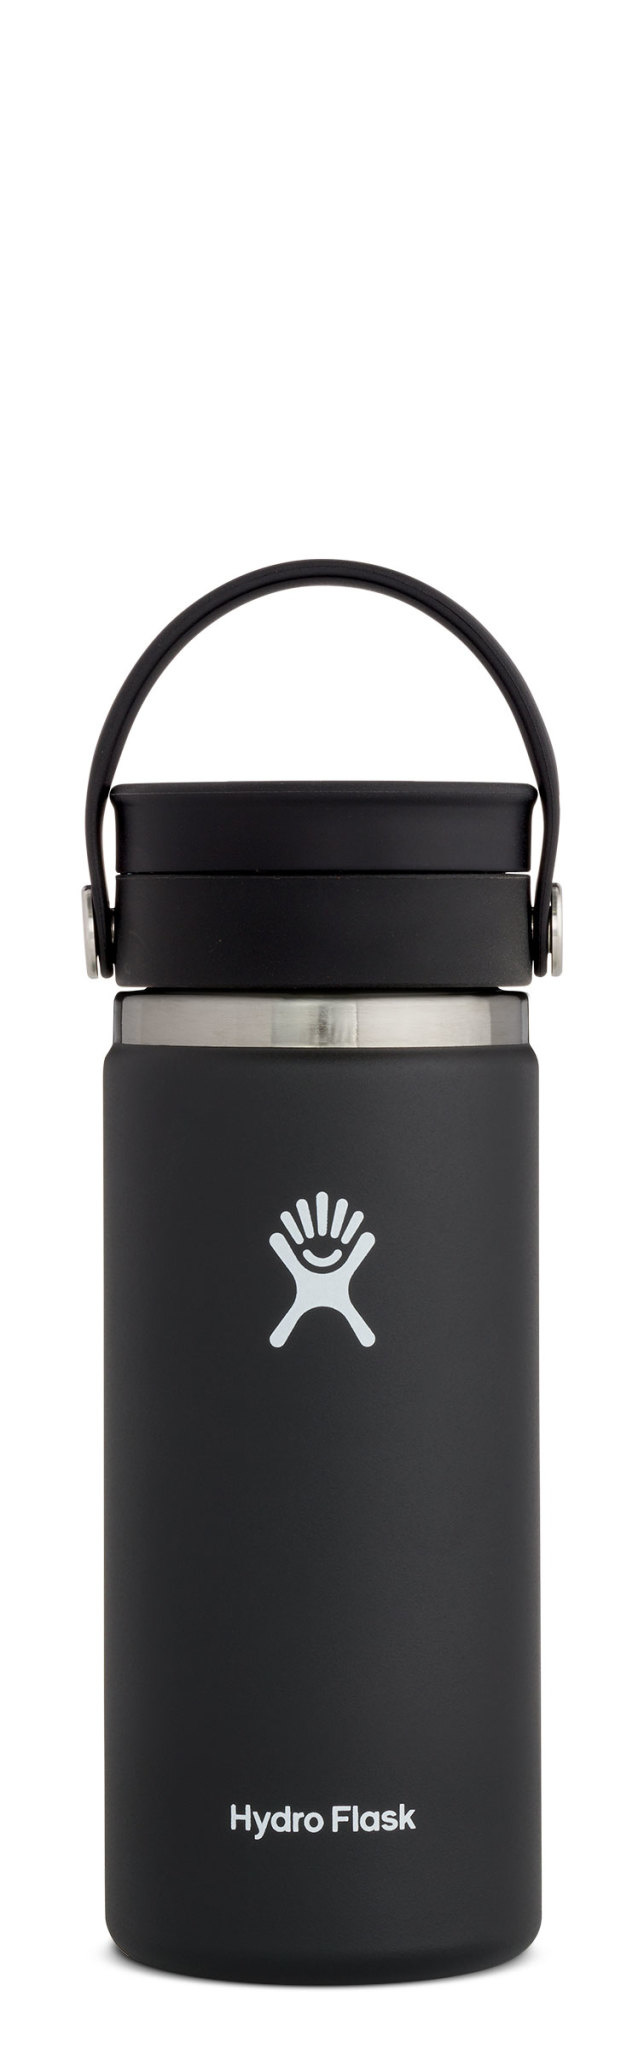 Hydro Flask 16oz Wide Mouth with Flex Sip Lid-2